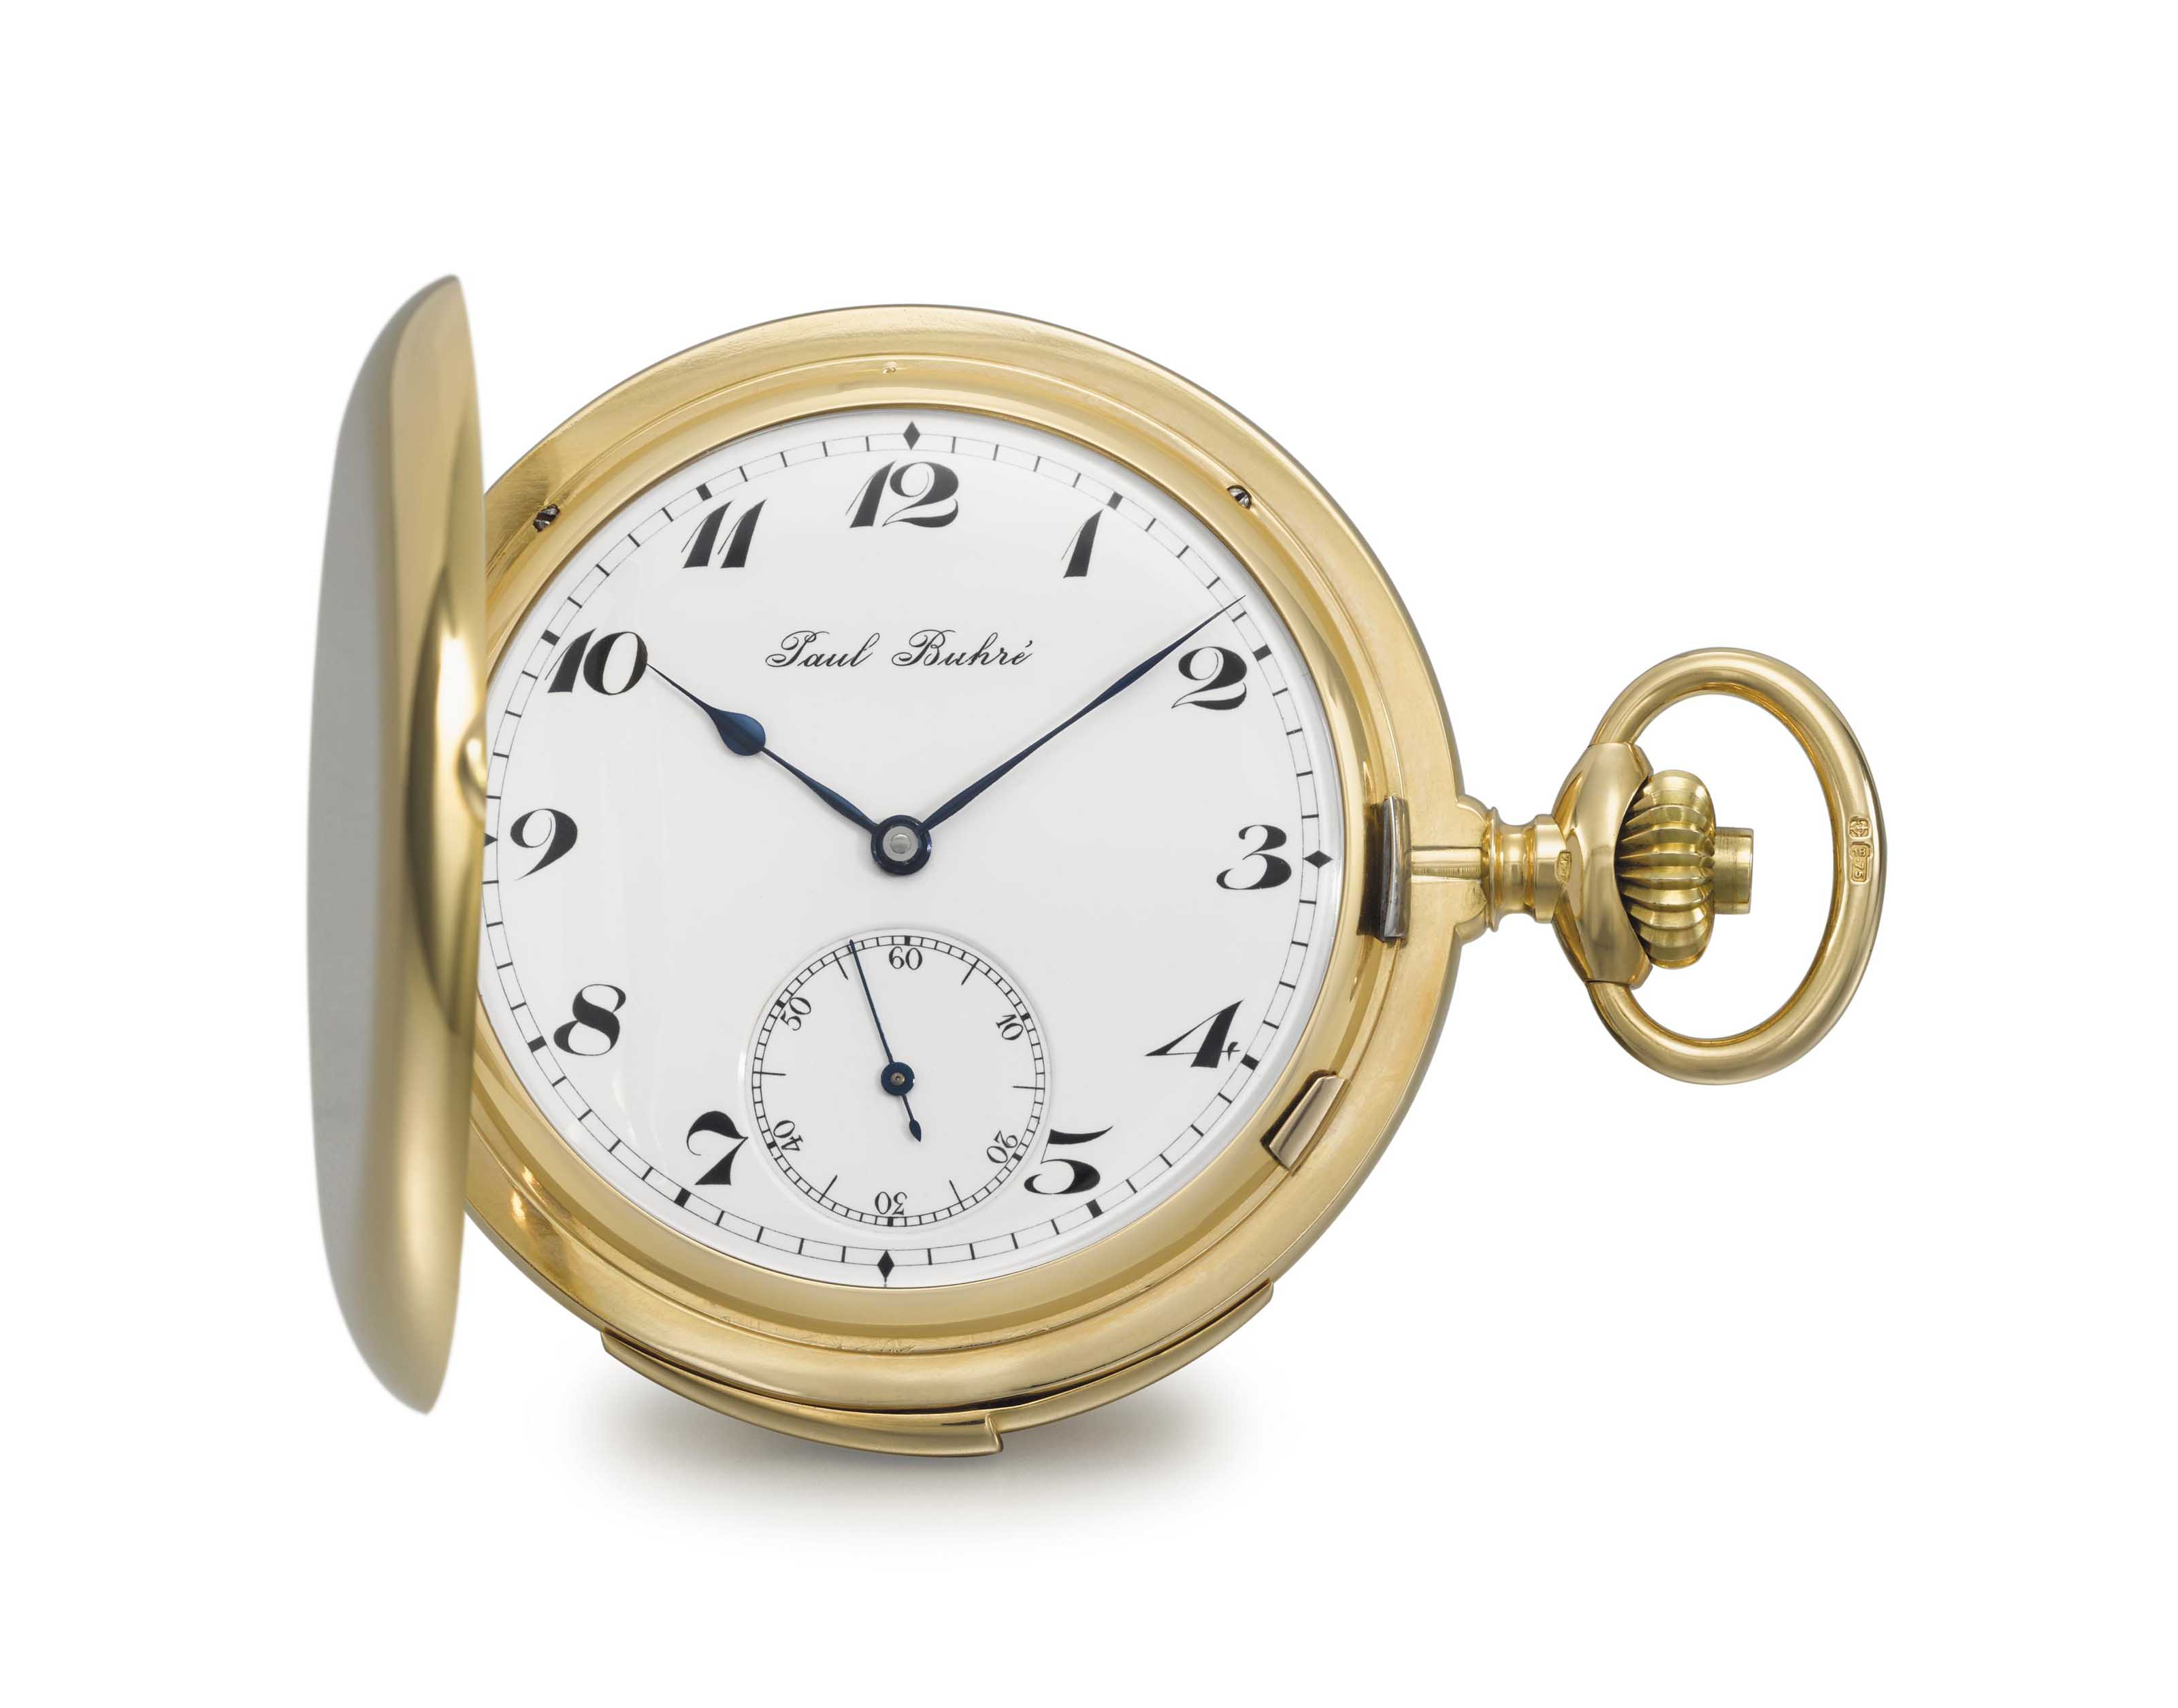 Paul Buhré. A very fine and extremely rare 18K gold hunter case Westminster chime carillon minute repeating keyless lever watch with four hammers and four gongs, made for the English market